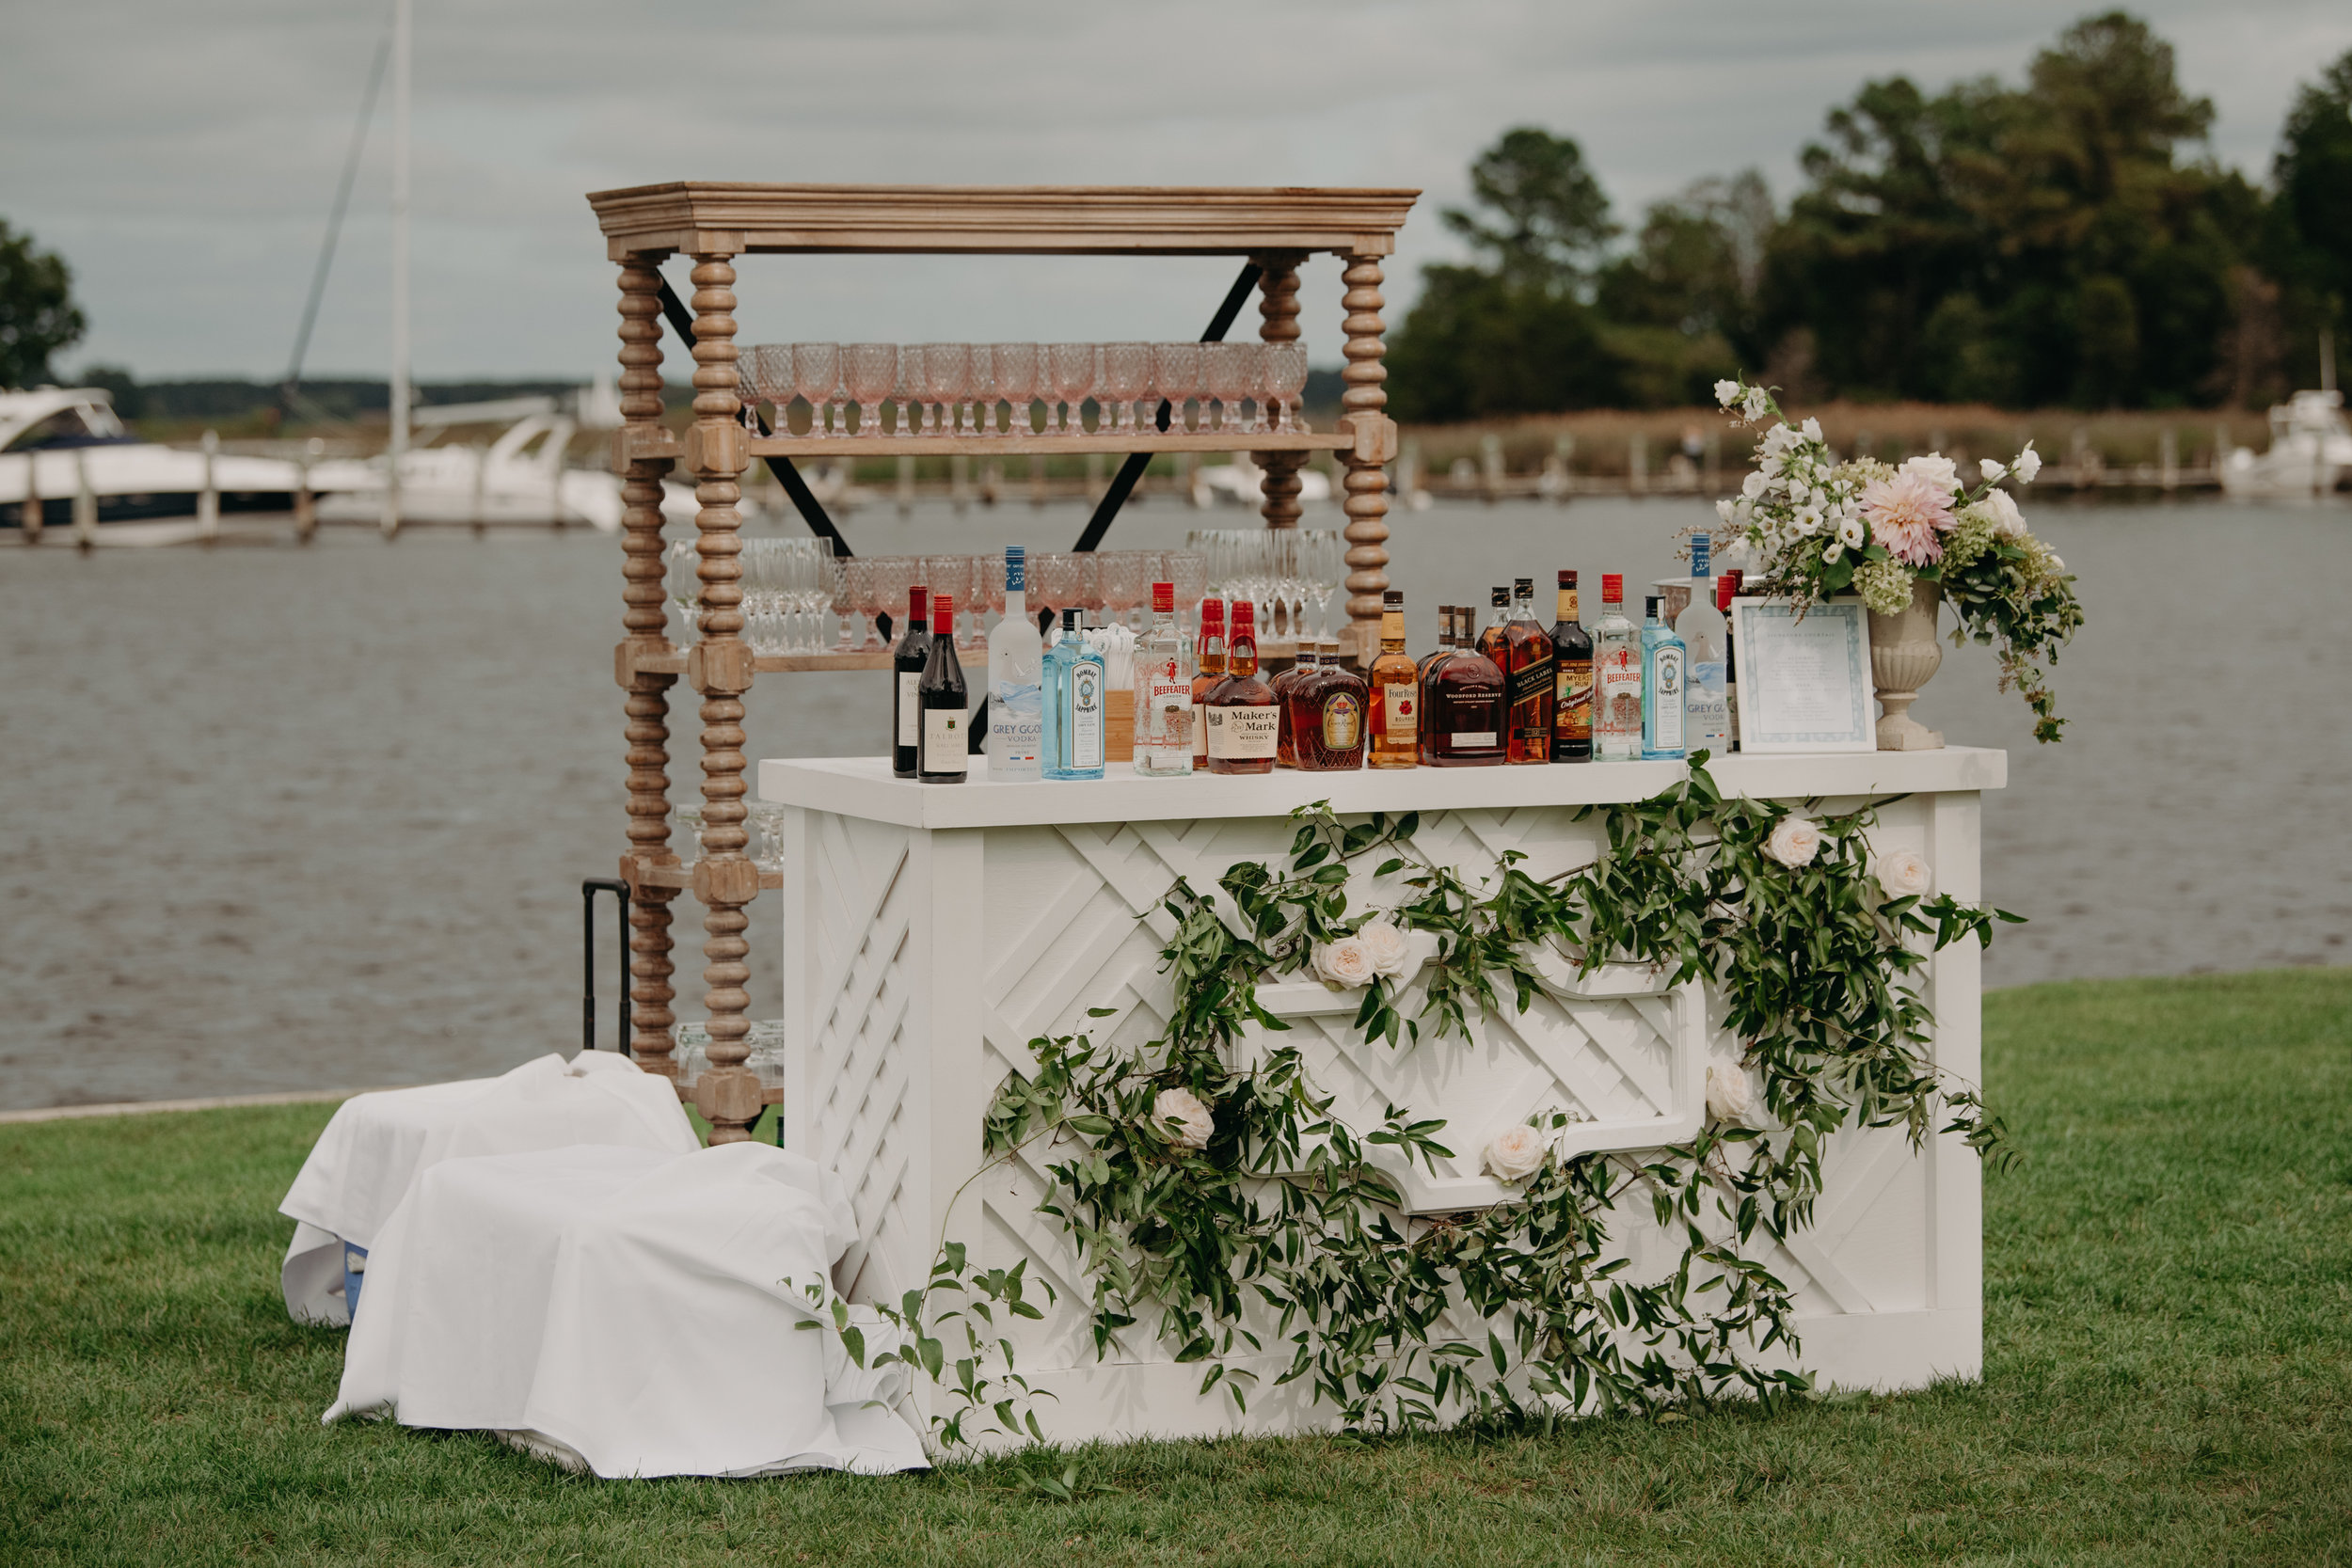 A Garden Party Florist, Maryland Wedding, Inn at Perry Cabin, Bar Decor, DIY Flower Bar, DIY Corsage, Wedding Bar, Tyler Boye Photography